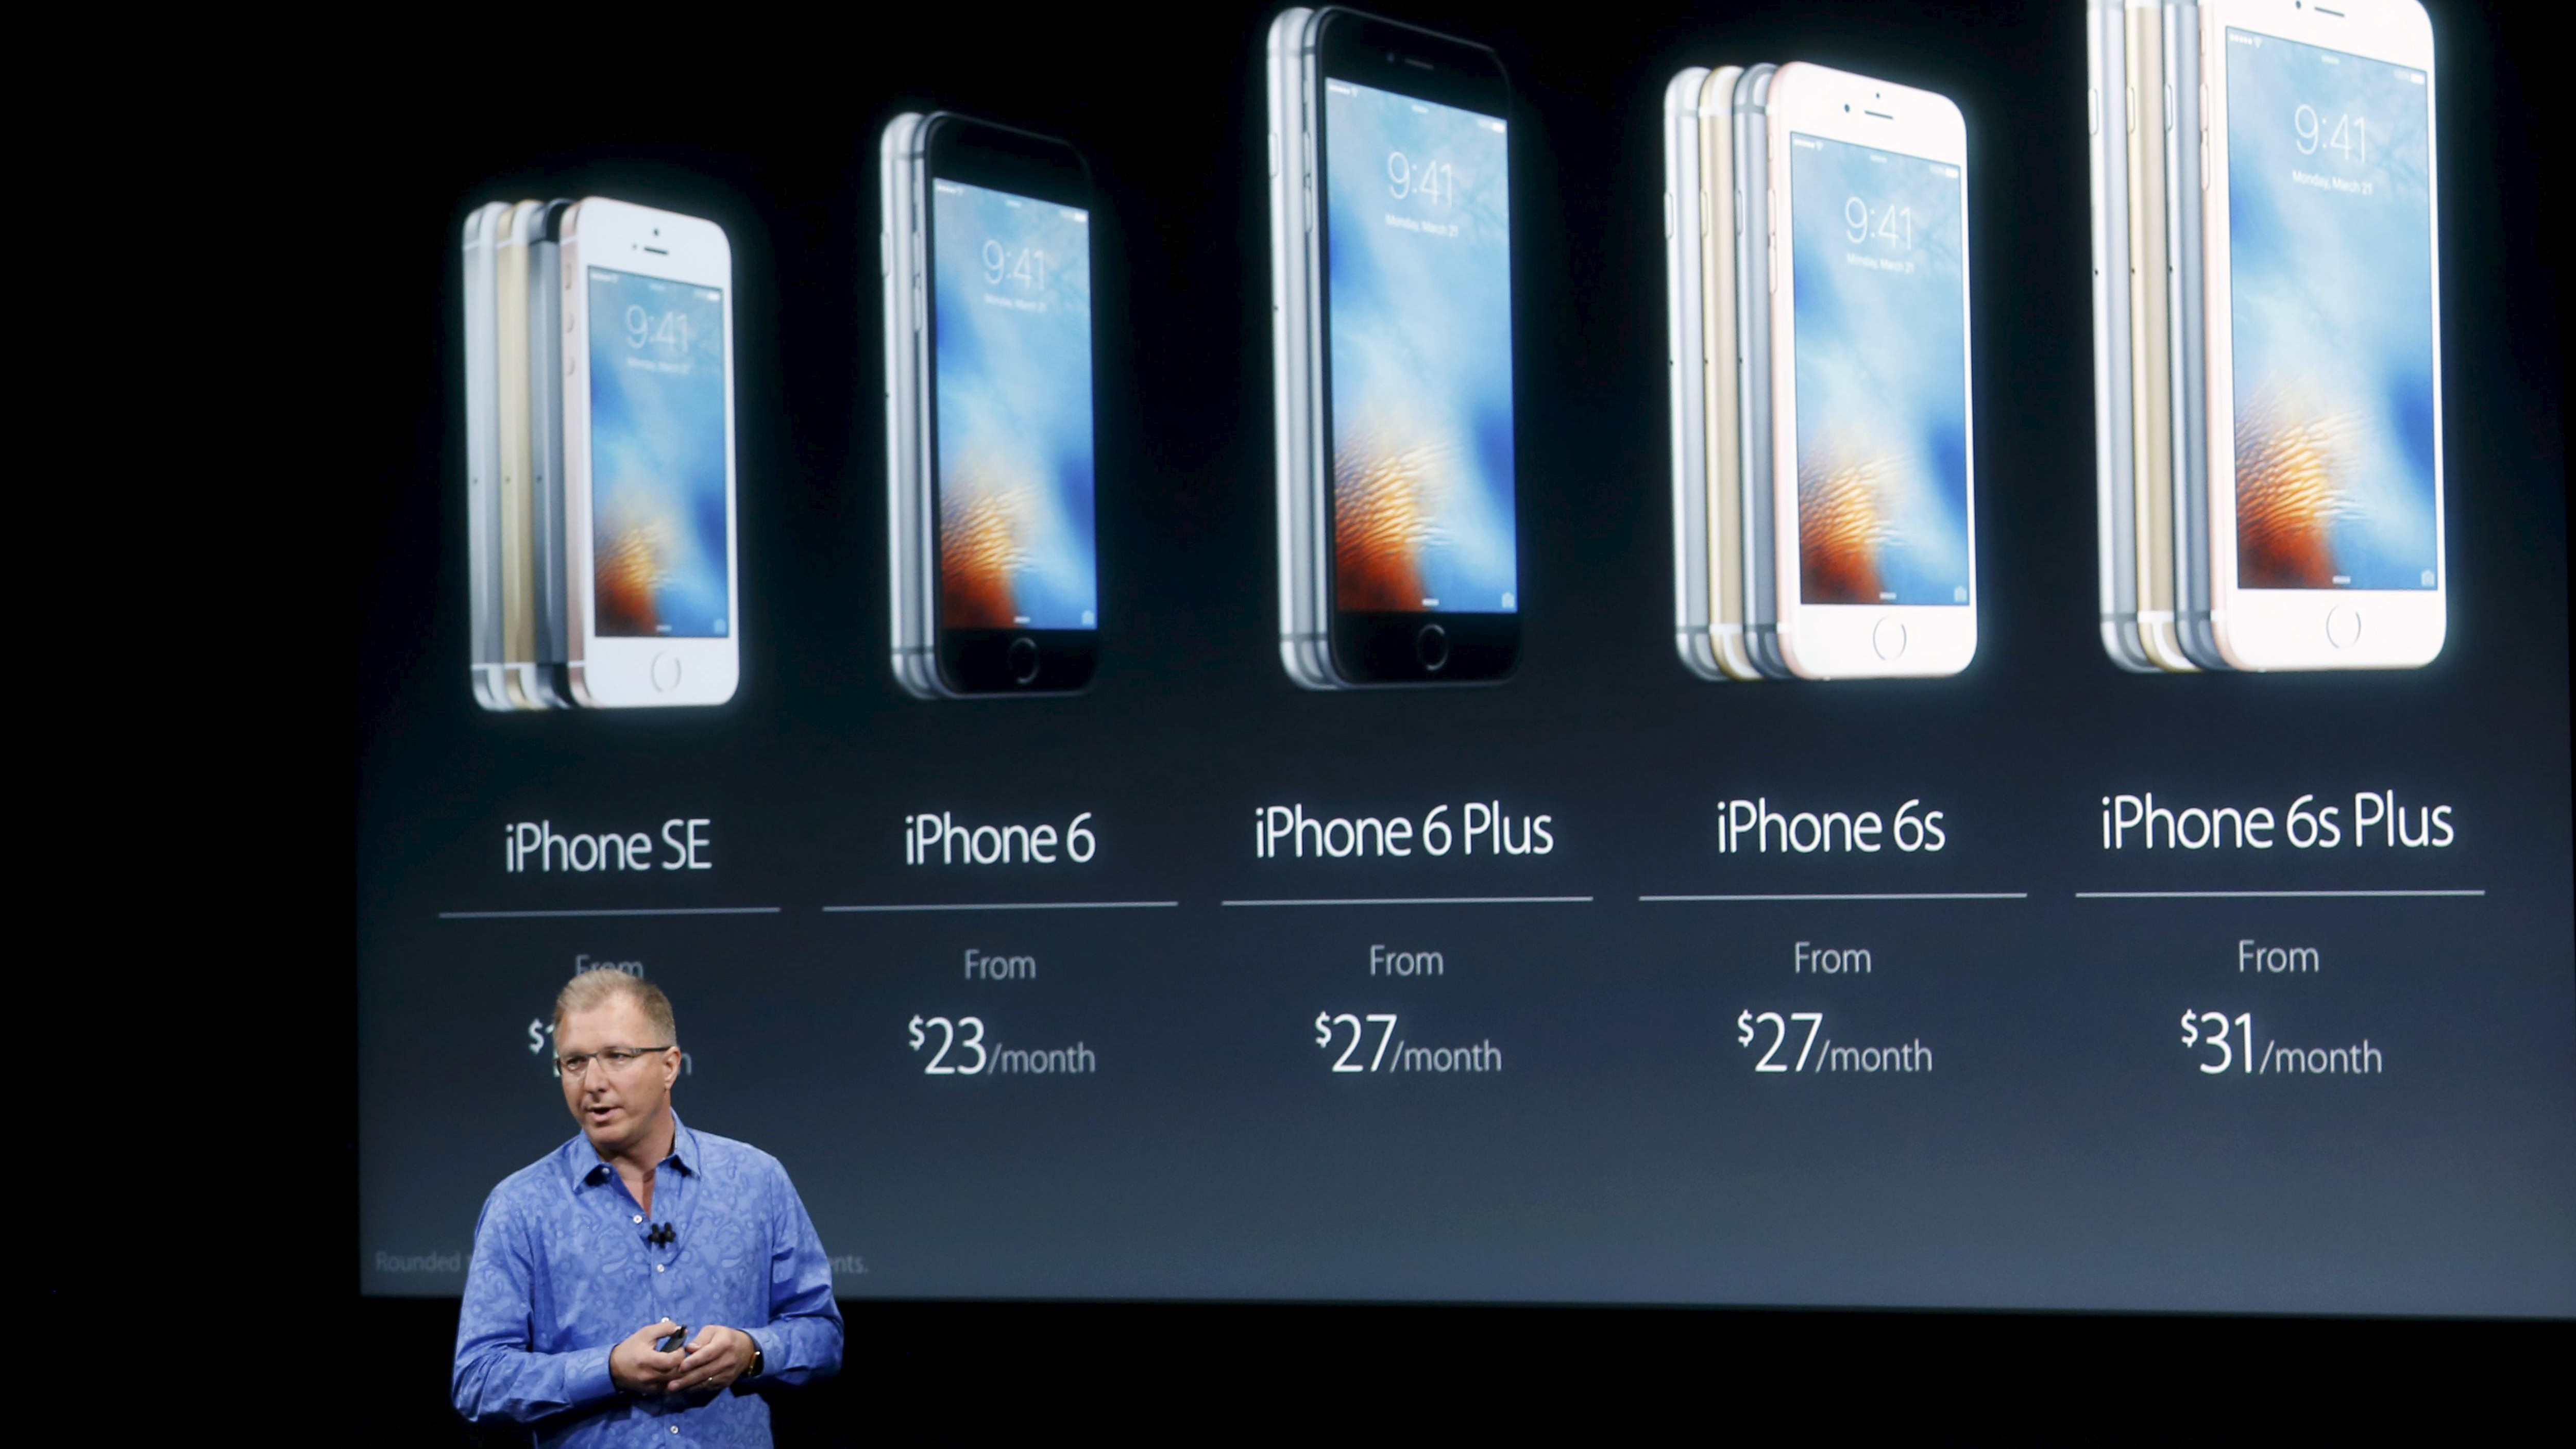 Apple Vice President Greg Joswiak introduces the iPhone SE during an event at the Apple headquarters in Cupertino, California March 21, 2016.